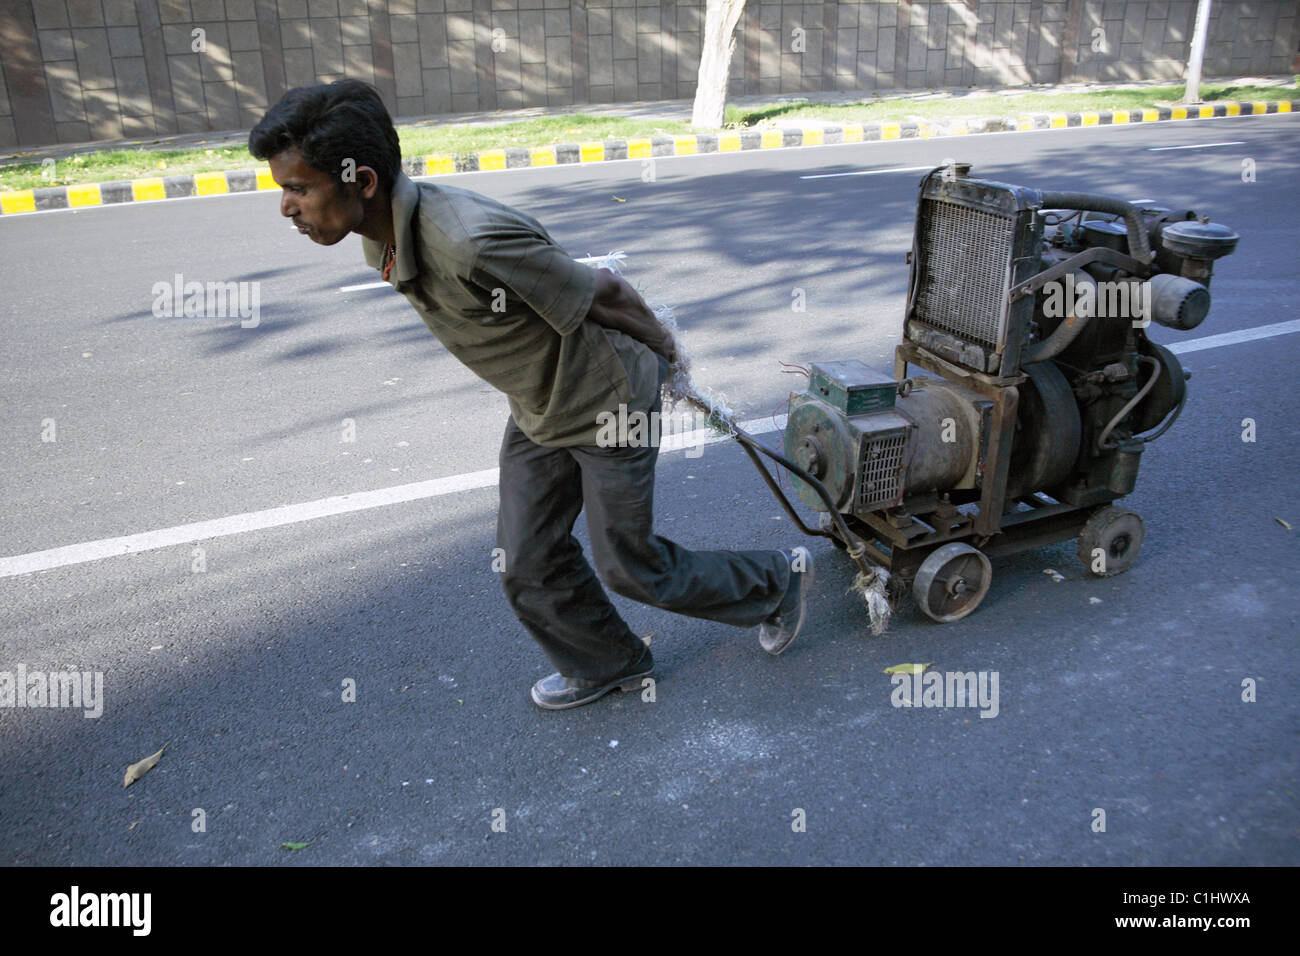 IND, India, 20110310, worker - Stock Image